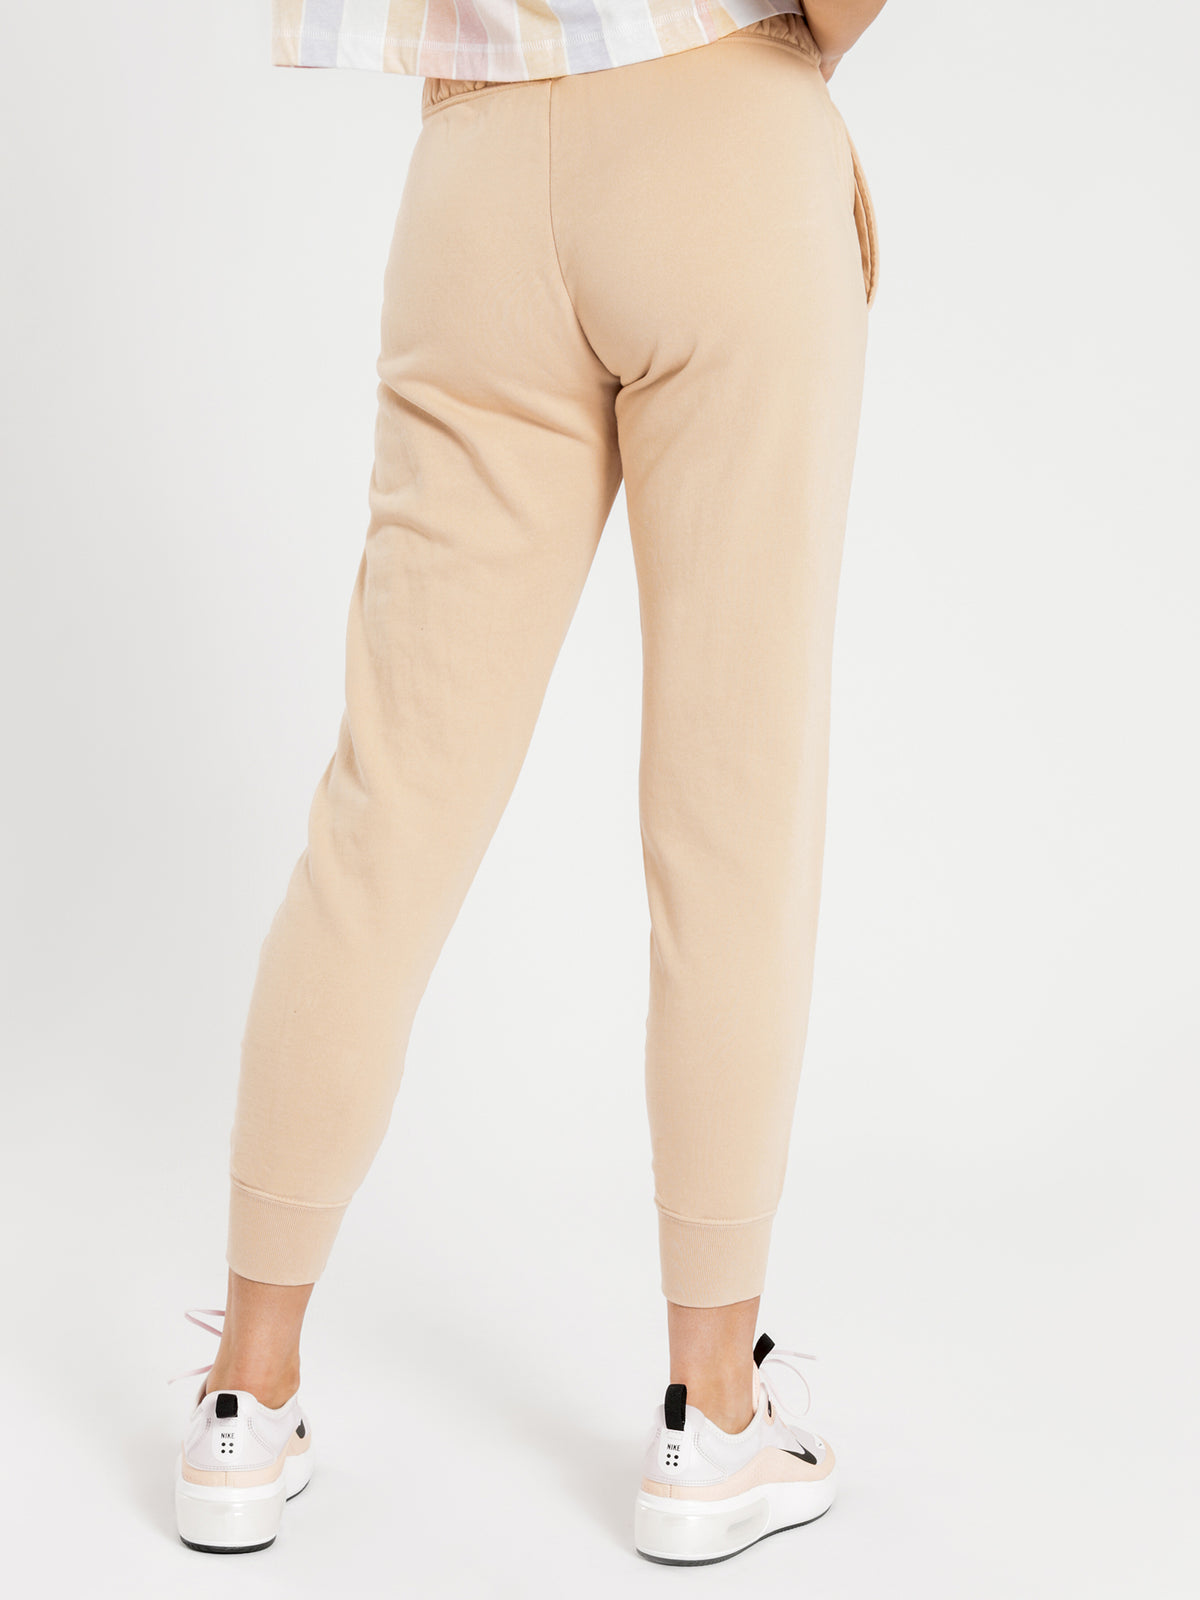 NSW Wash Track Pants in Pink